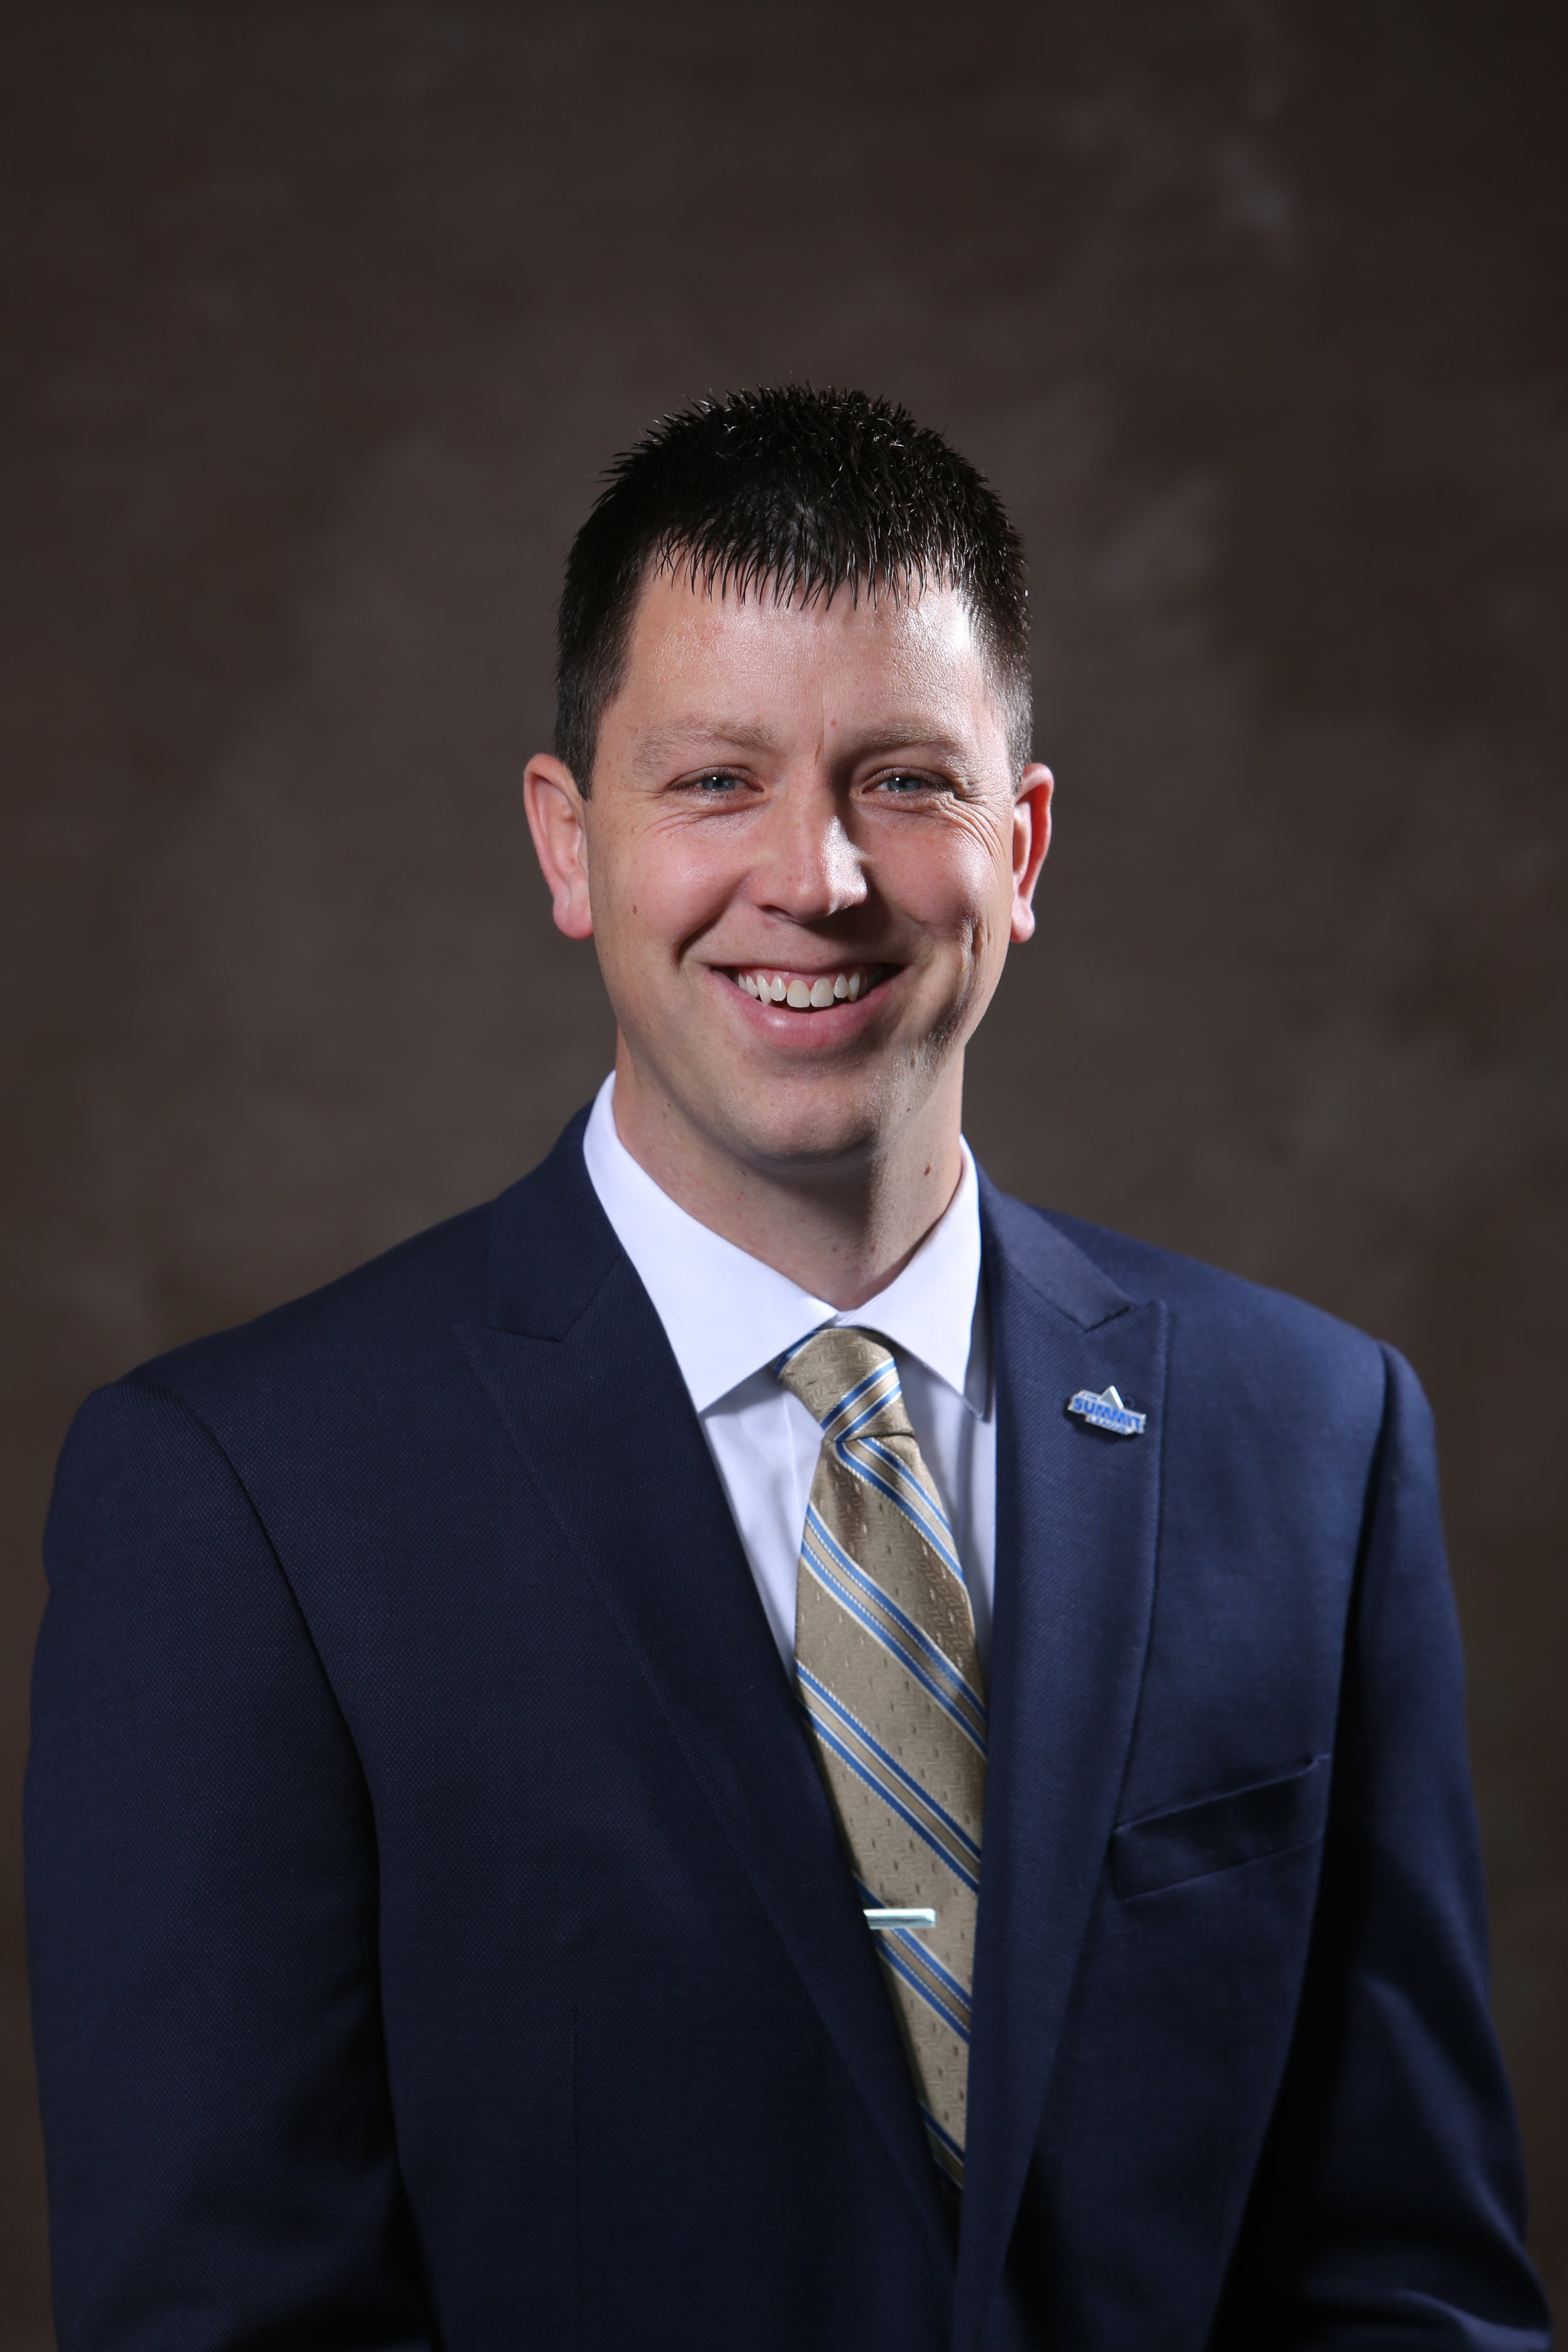 Bryan Miller is the Assistant Commissioner - Marketing & Championships for The Summit League.